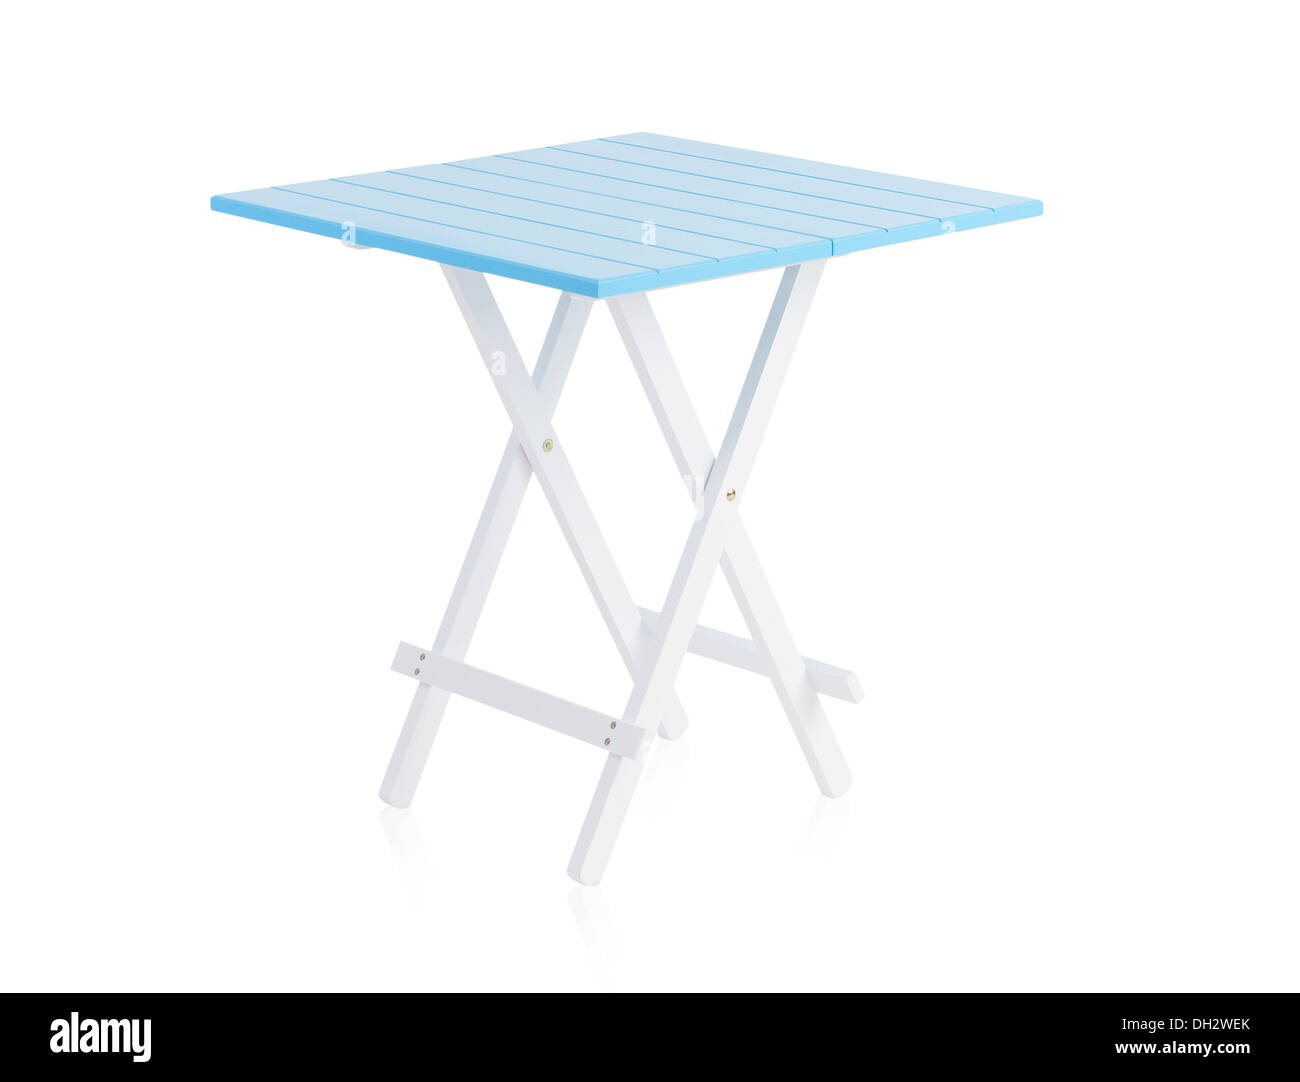 Blue wooden table isolated on white background Stock Photo